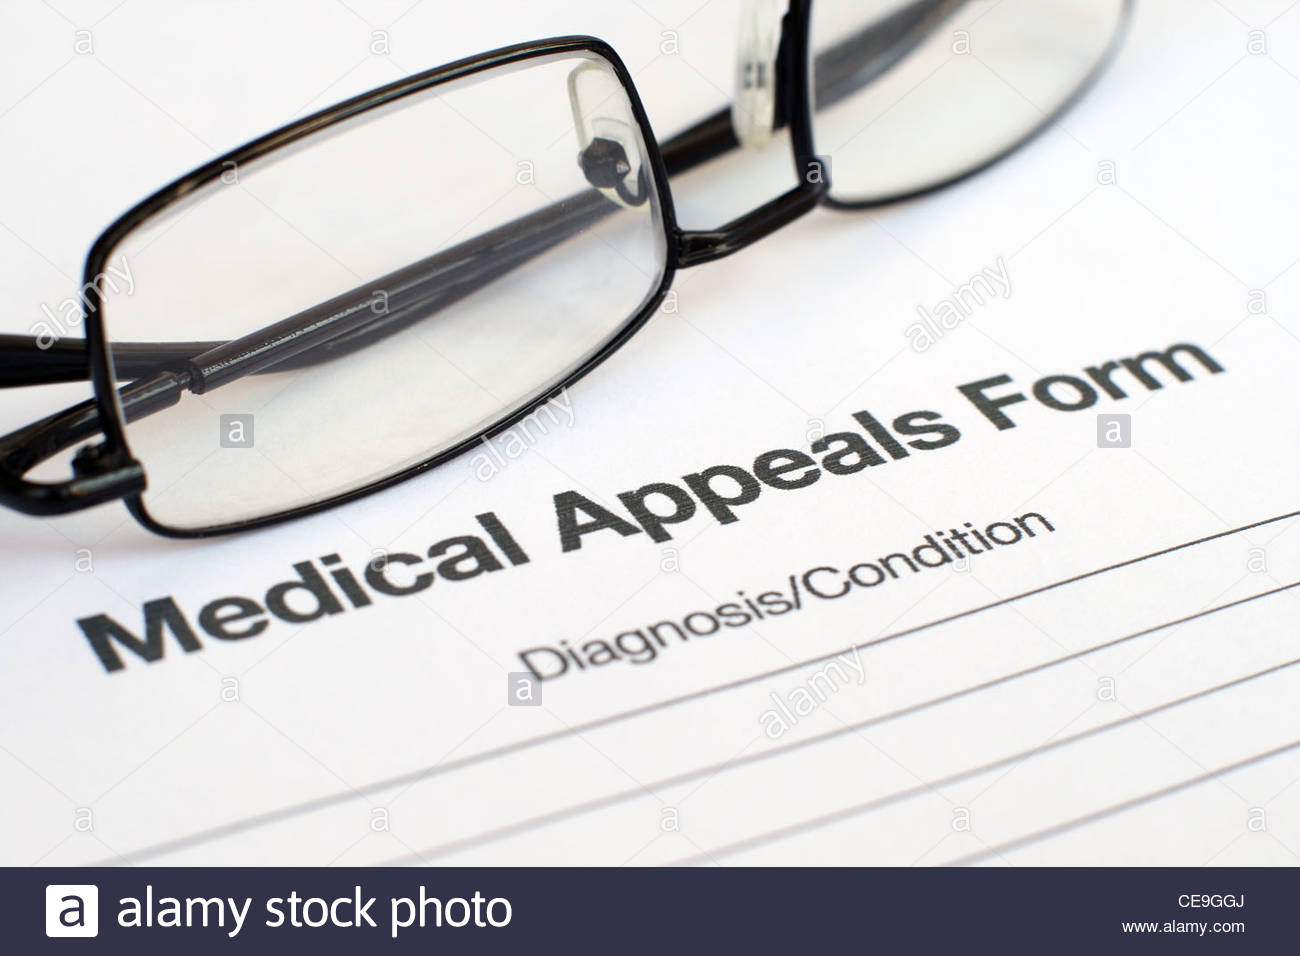 medical appeals form Stock Photo, Royalty Free Image: 43236498 - Alamy